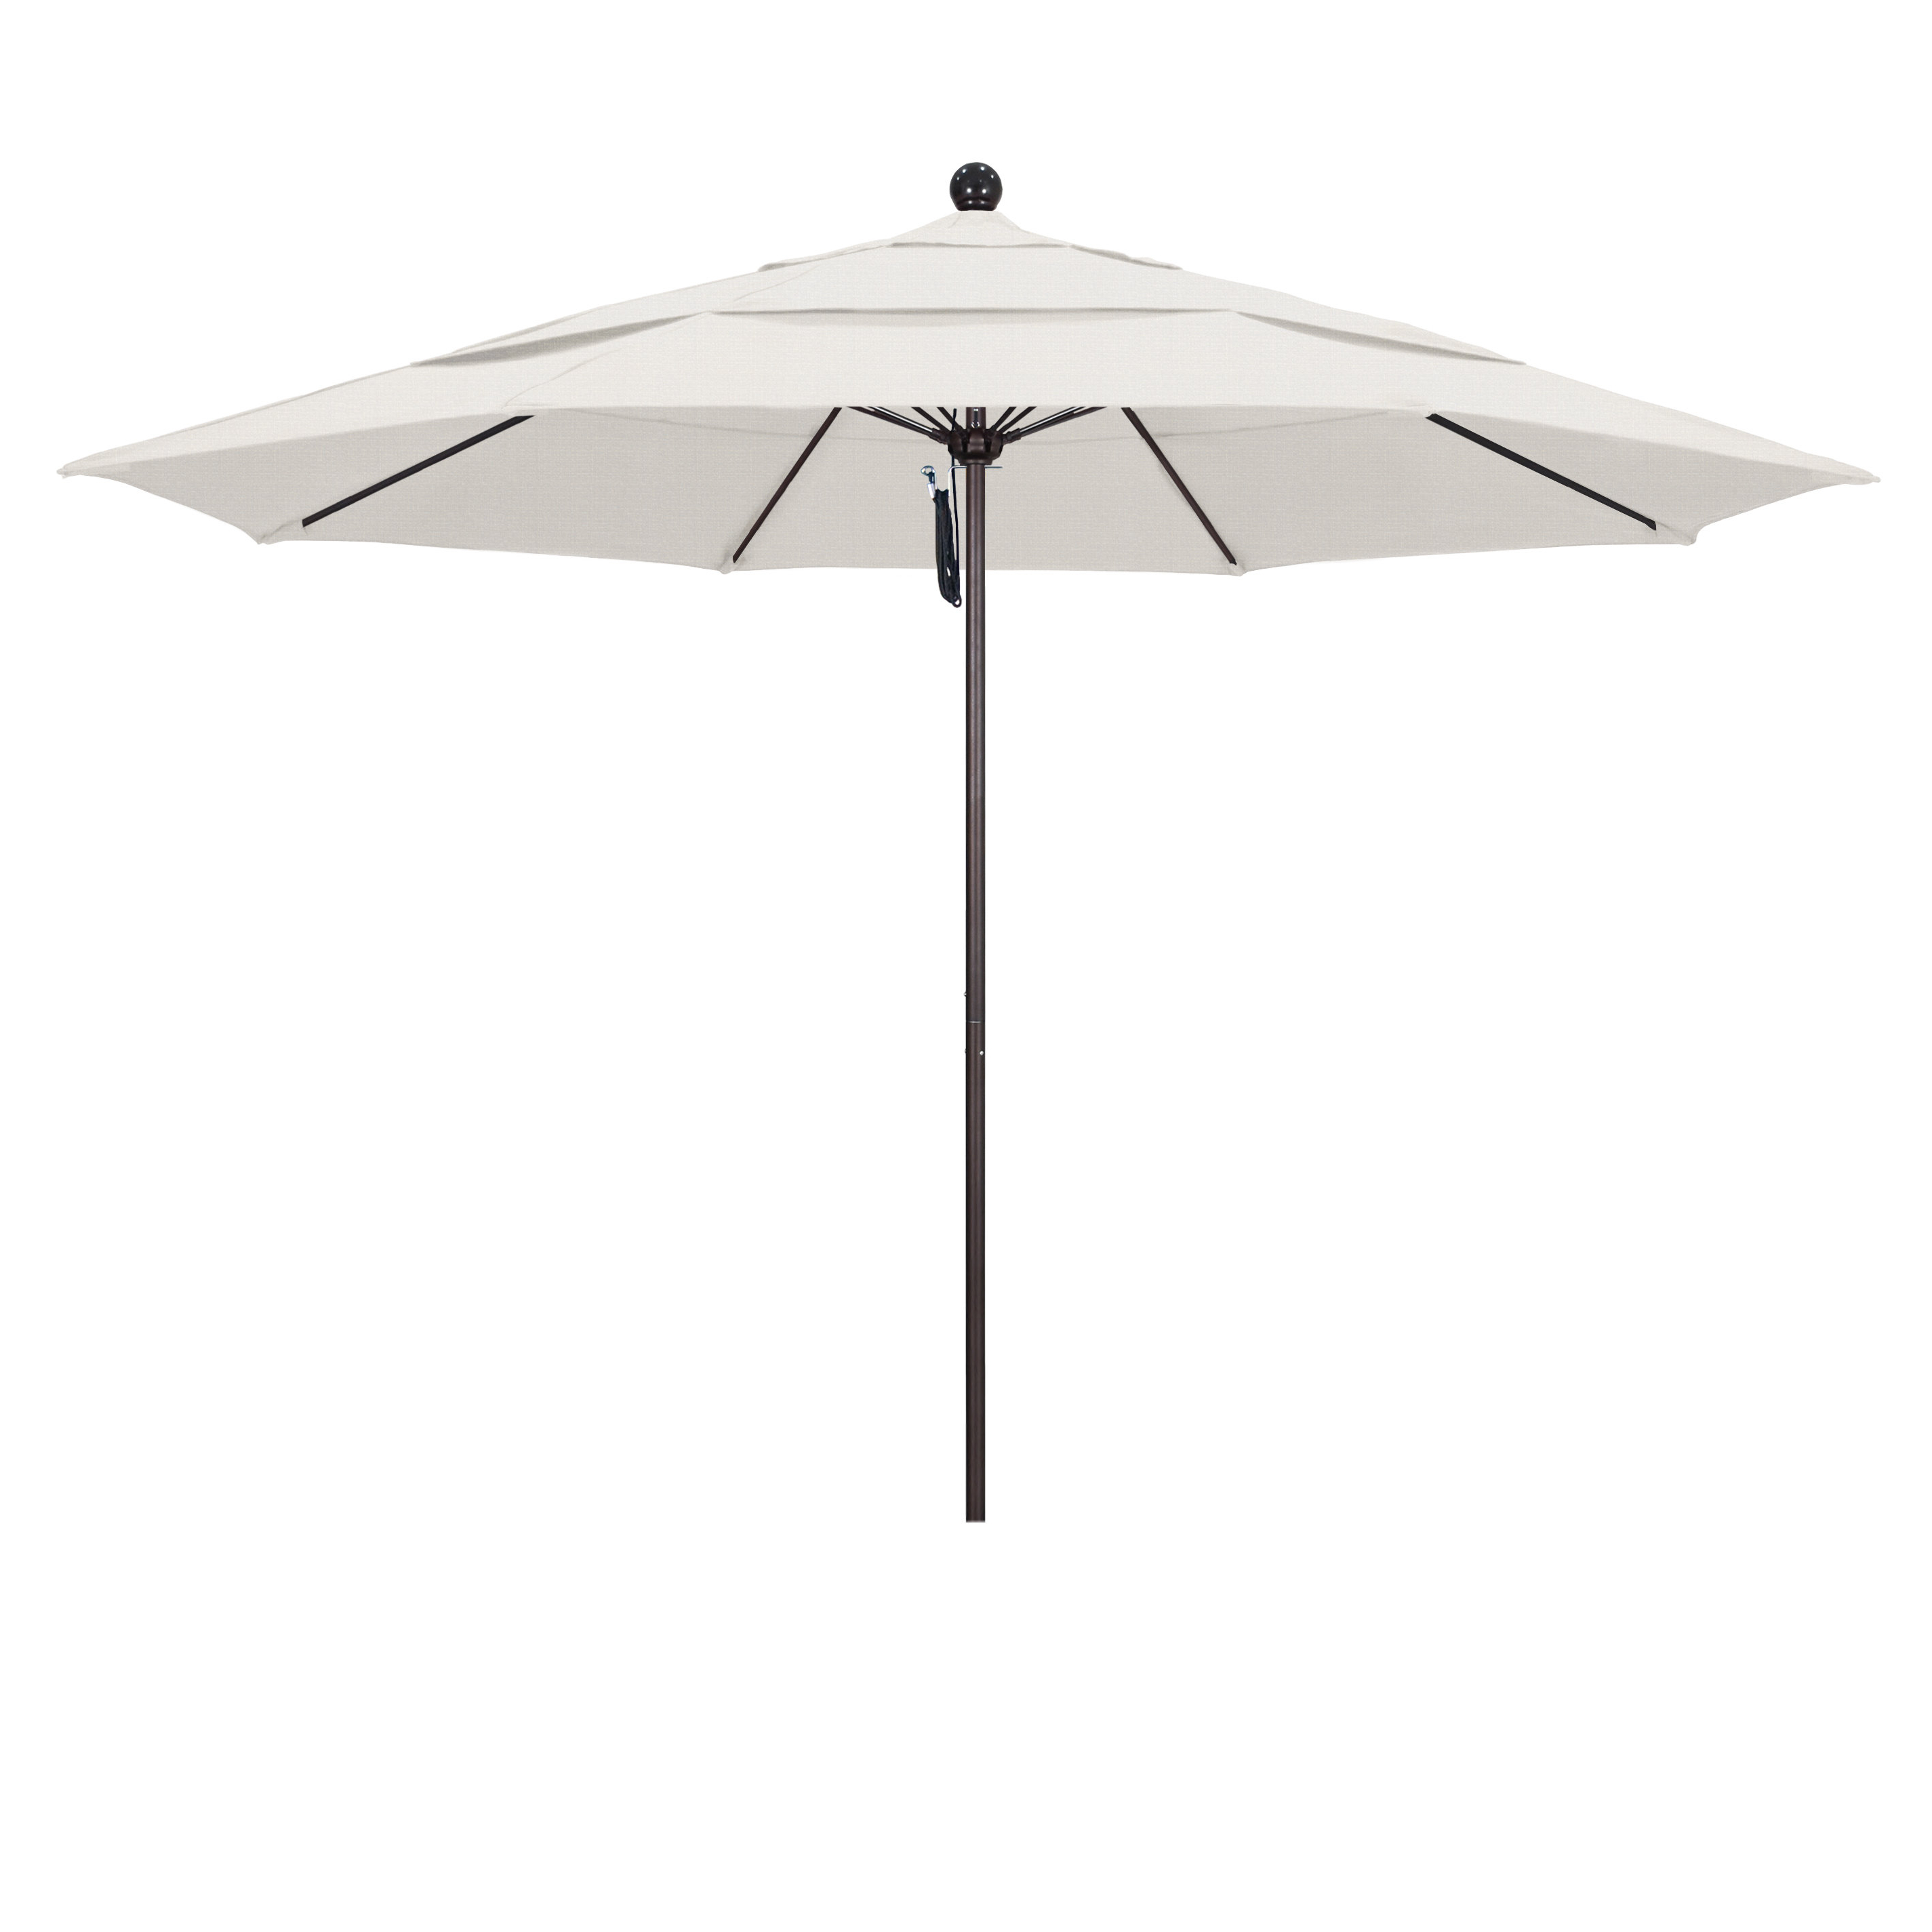 Cardine Market Umbrellas With Regard To 2020 Davenport 11' Market Umbrella (View 11 of 20)